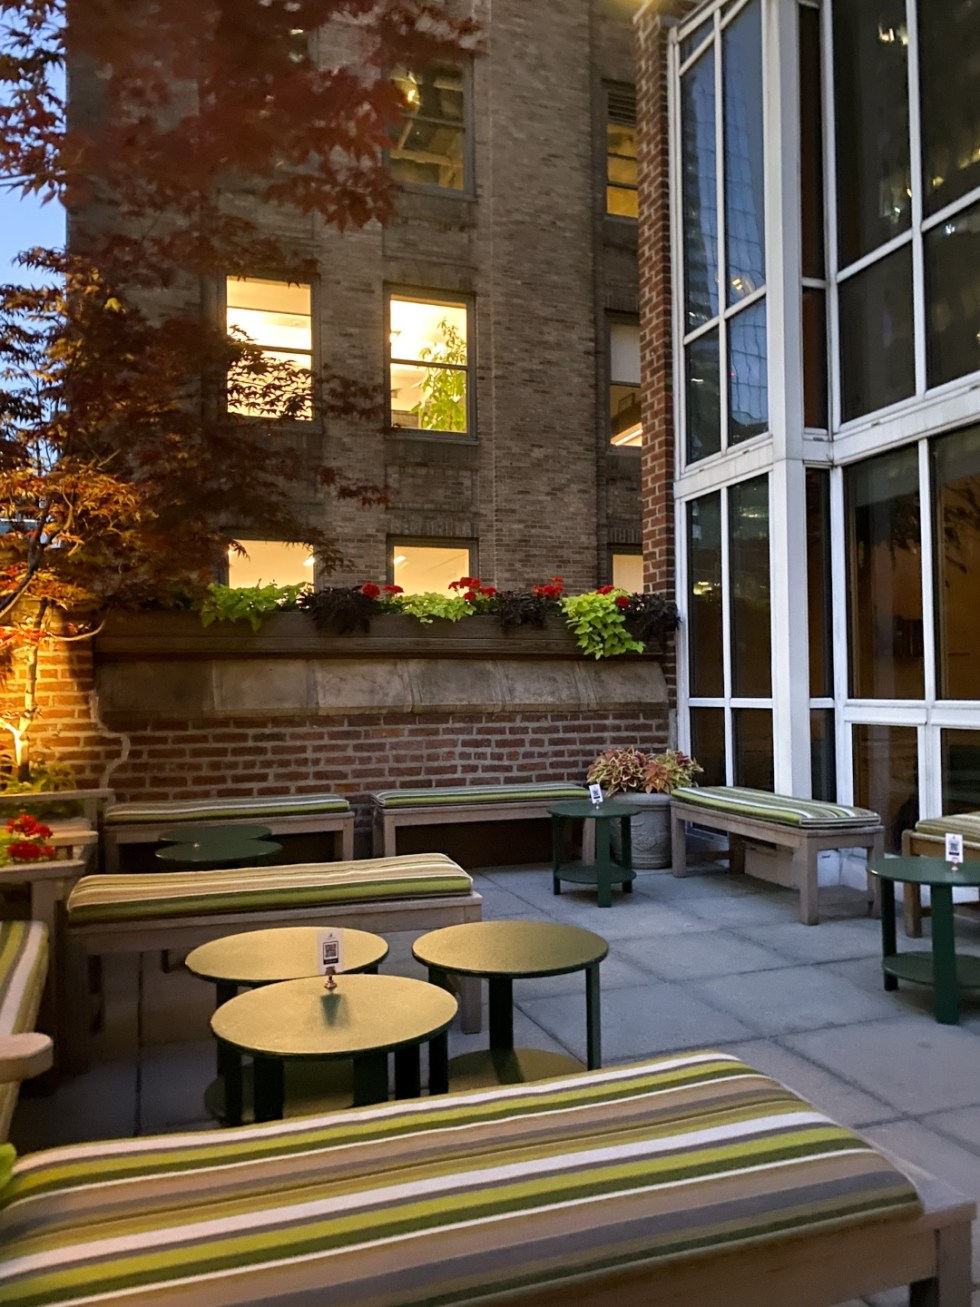 NYC Summer Weekend: Things to Do in NYC in the Summer - I'm Fixin' To - @imfixintoblog   NYC Summer Weekend by popular NC travel blog, I'm Fixin' To: image of a patio with round black coffee tables and wooden benches with tan and green stripe cushions.